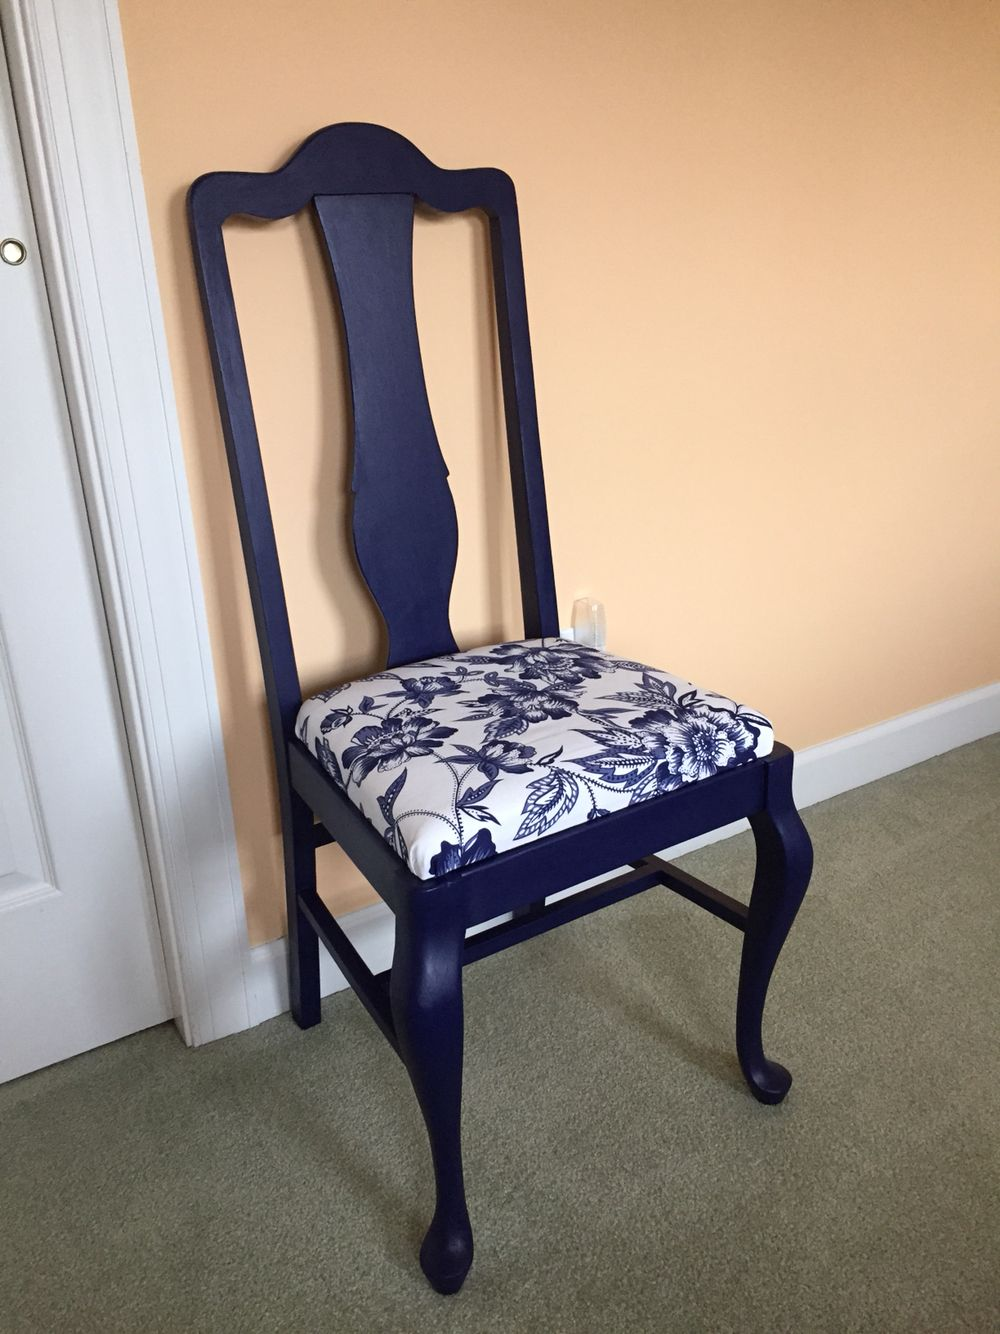 Queen Anne Chair Painted Canton Blue China And Covered With A Blue Floral Chintz Fabric Dining Chair Makeover Dining Chair Covers Painted Dining Table